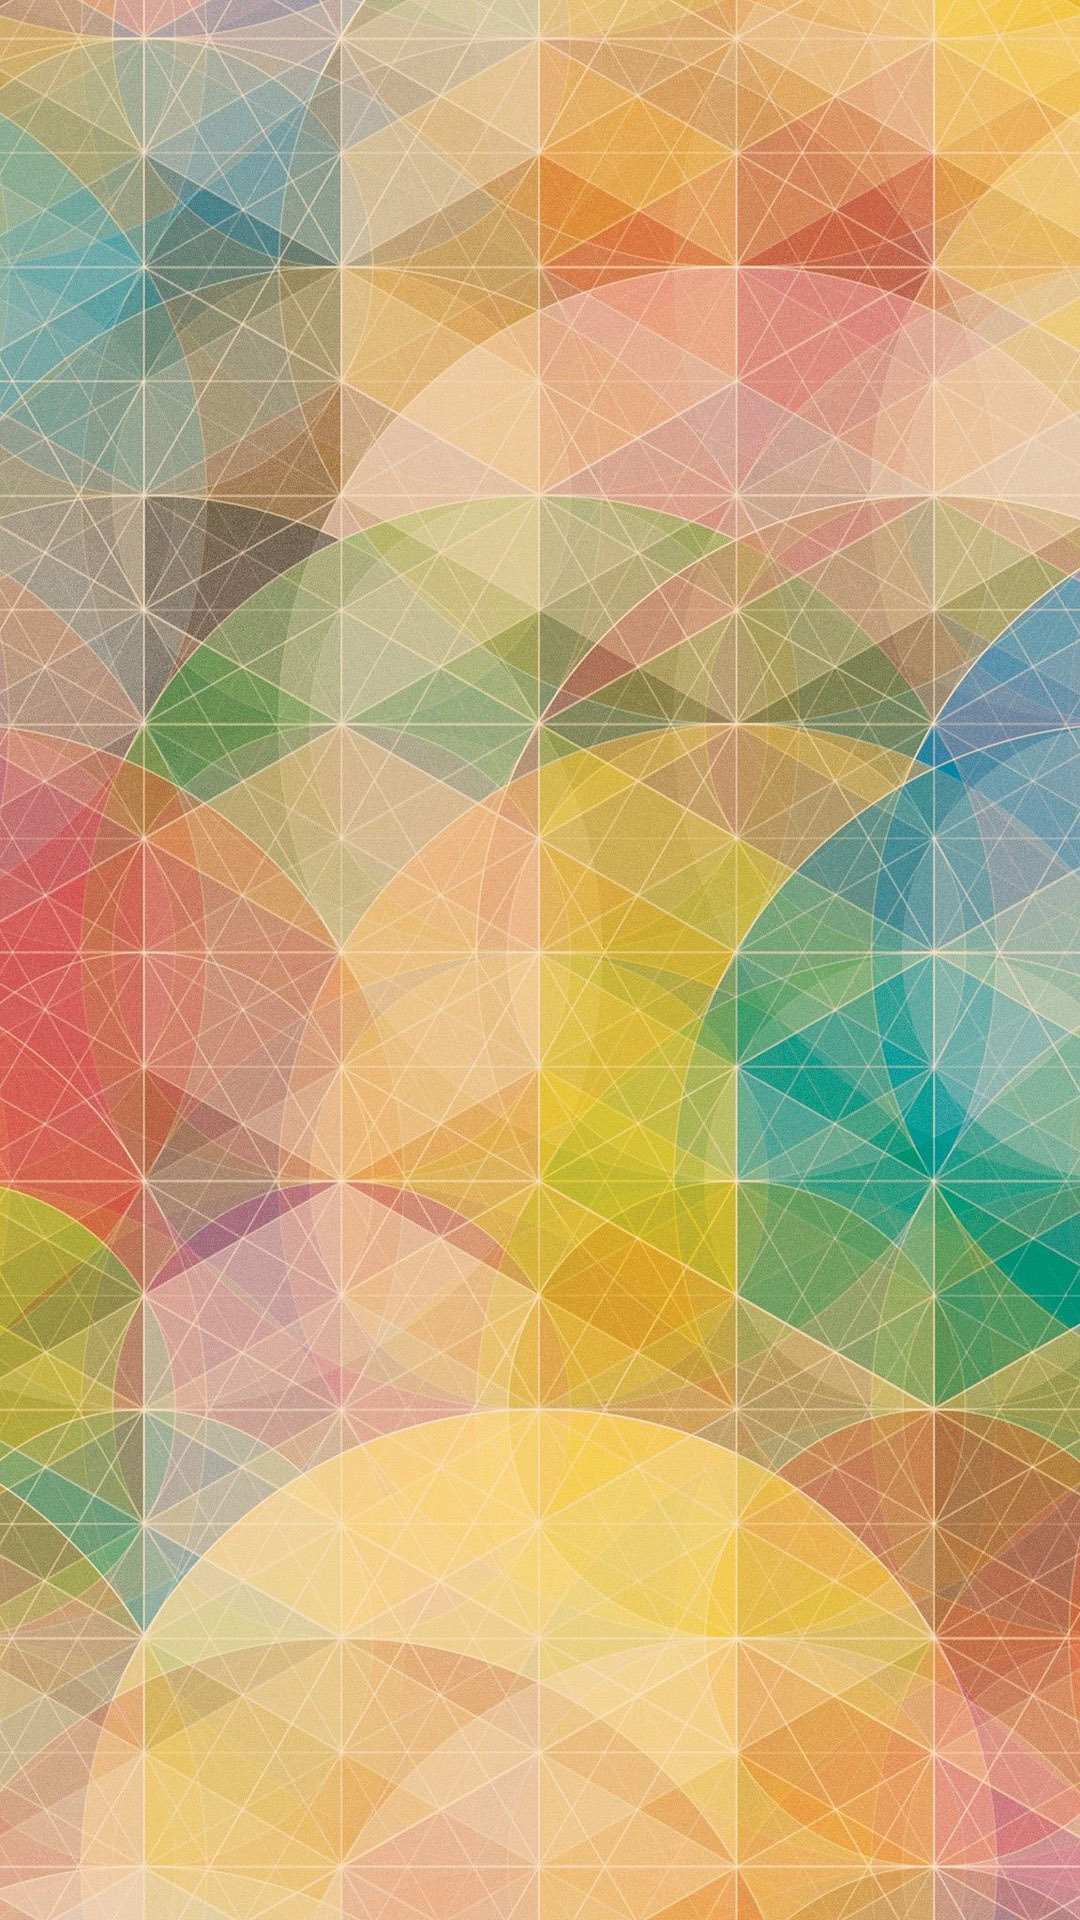 Colorful geometric patterns best htc one m9 wallpaper Geometric patterns